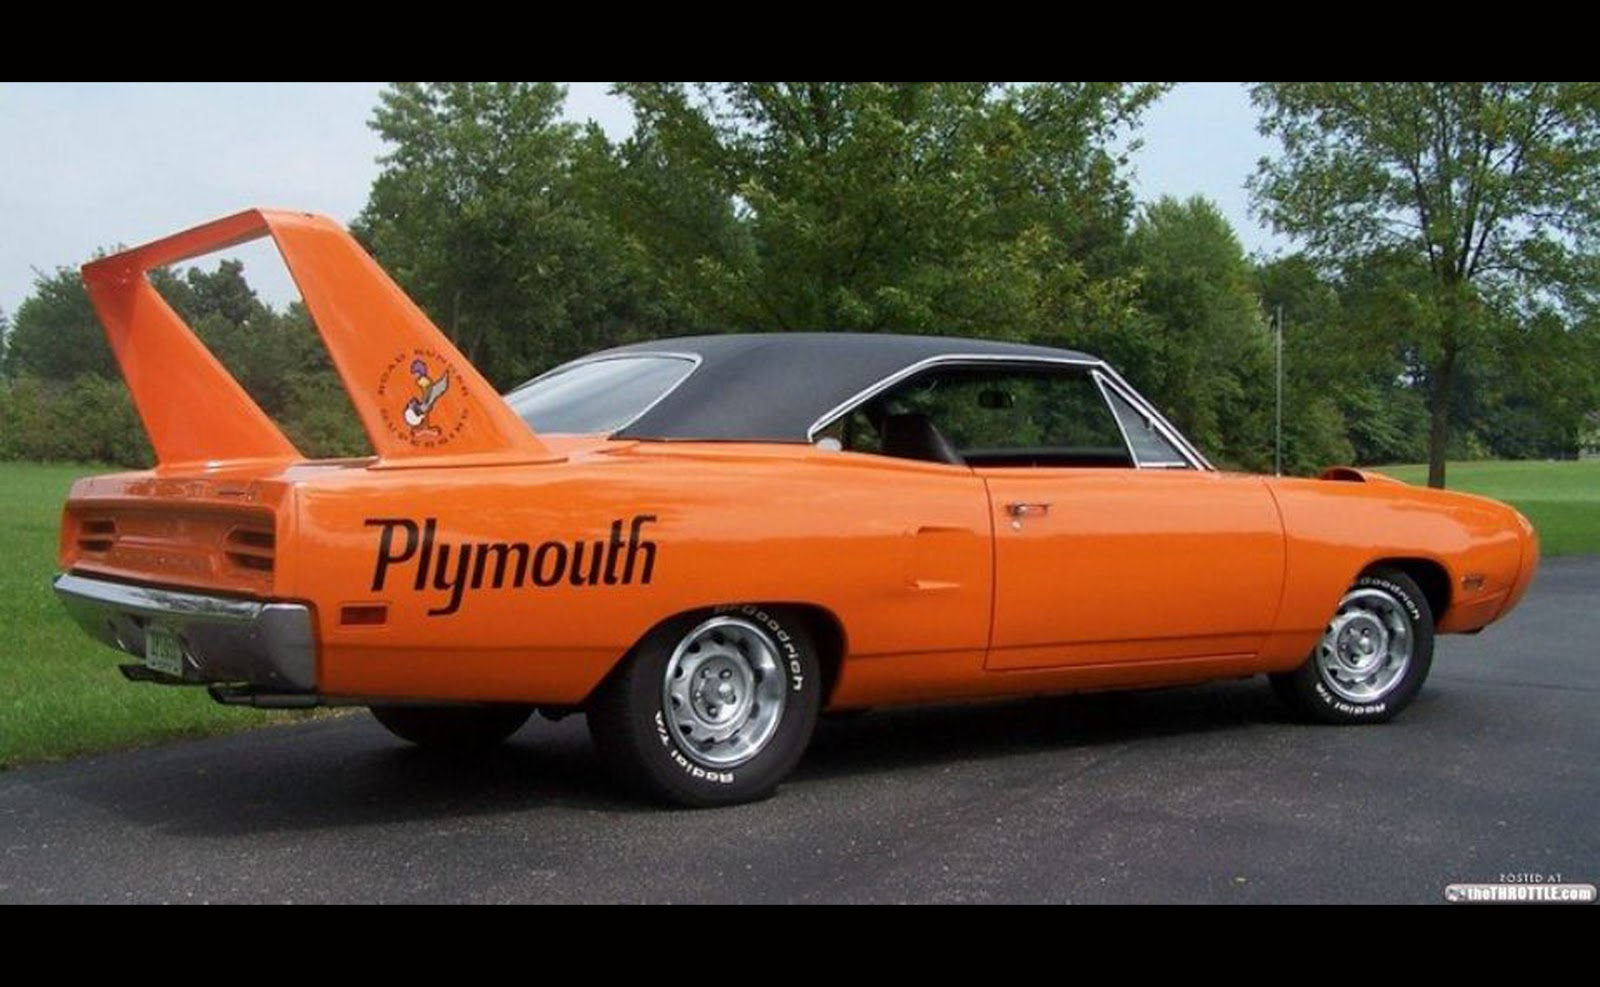 Classic muscle car dodge plymouth plymoth rear spoiler giant orange